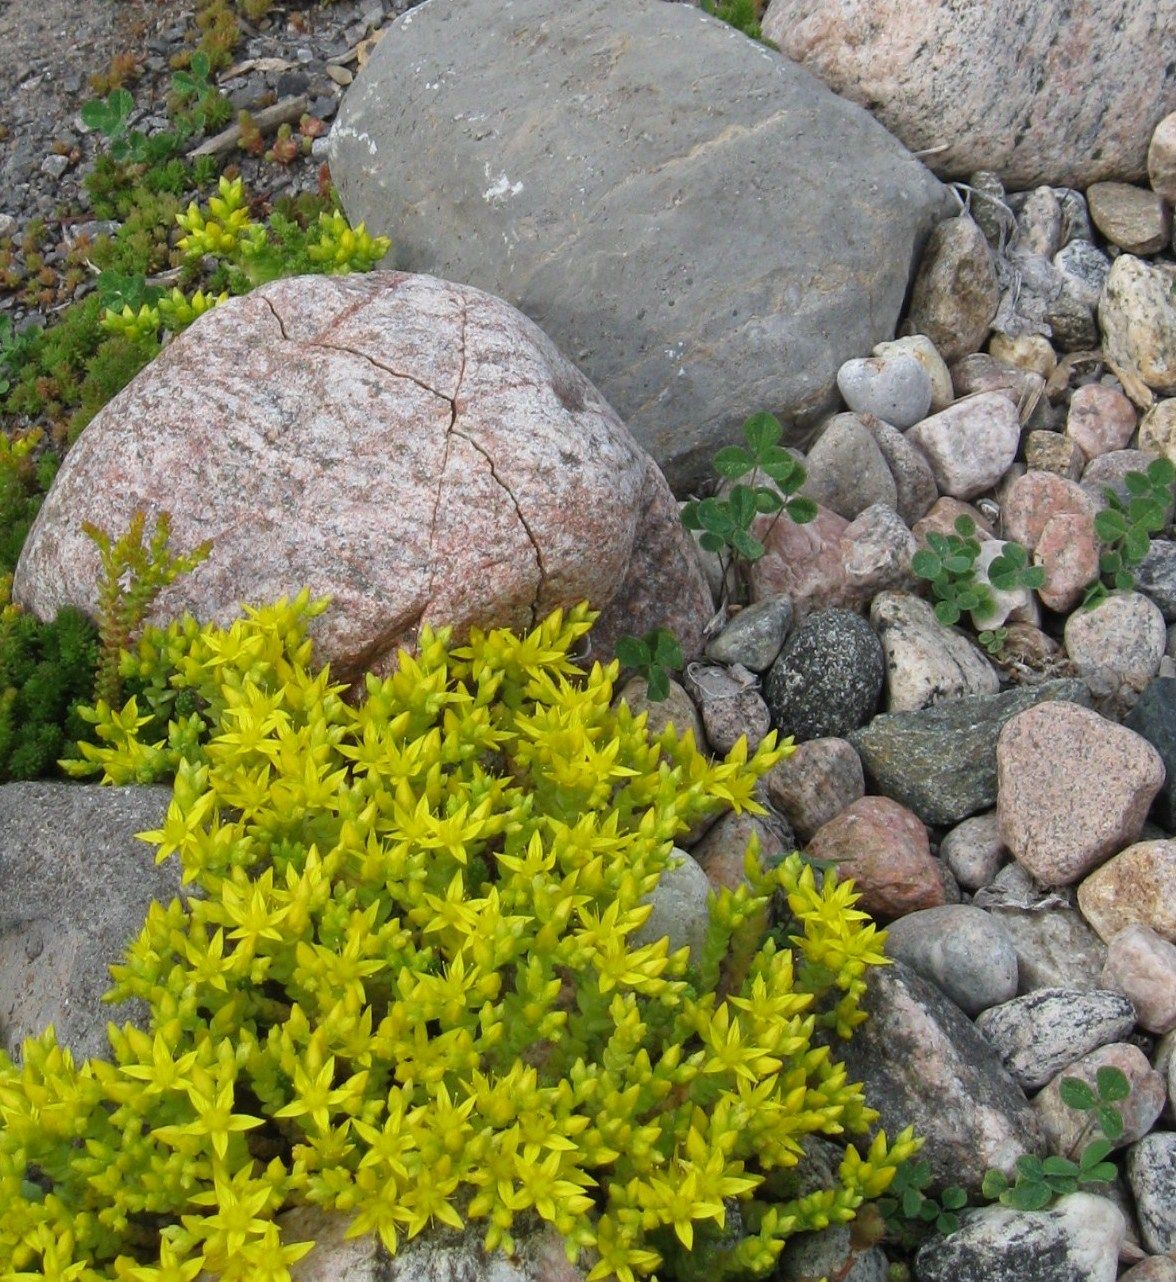 Landscaping With River Rock Dry River Rock Garden Ideas: Round River Rocks And Flat